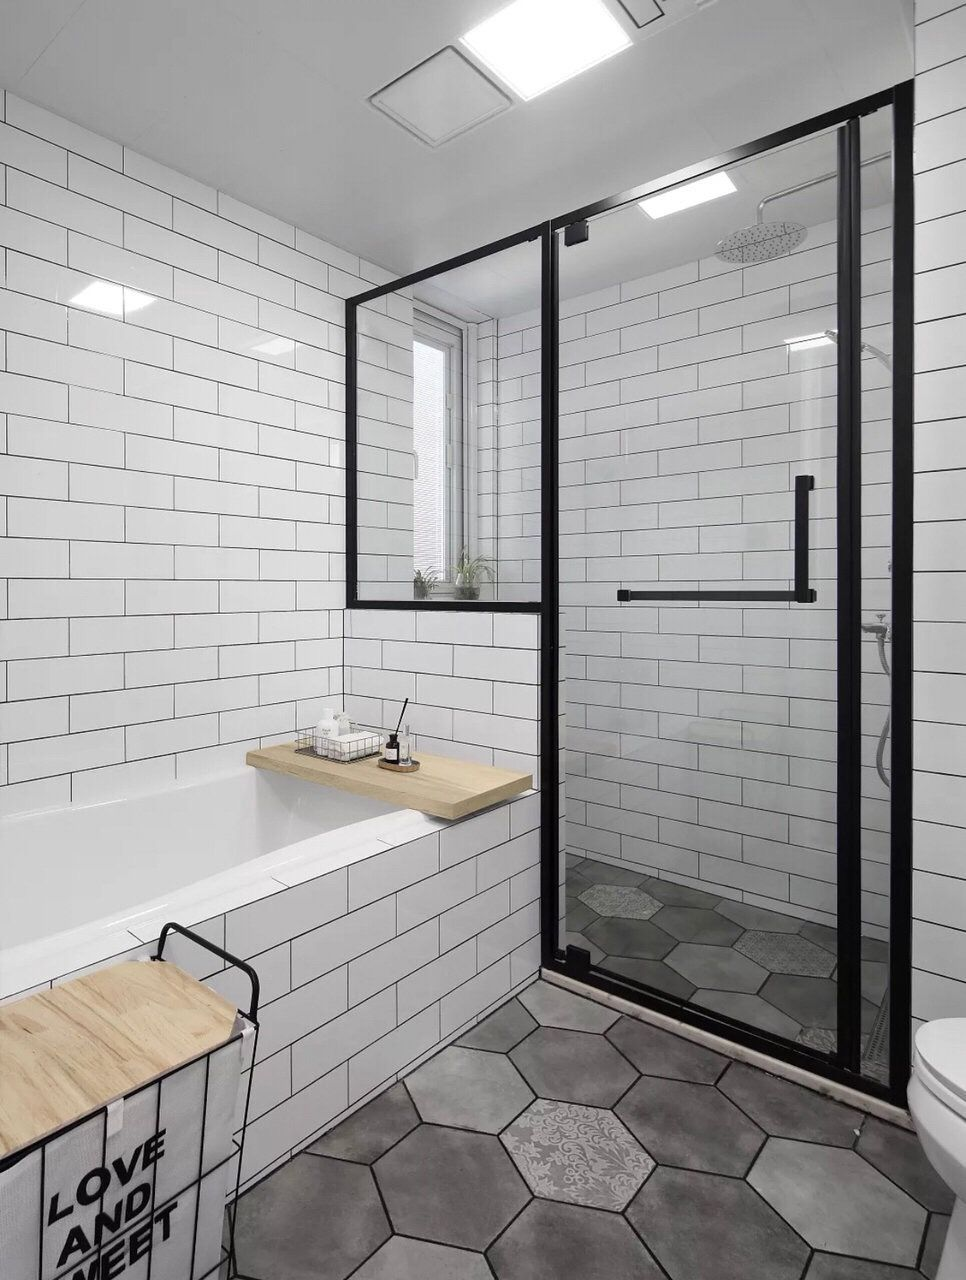 16 Beautiful Small Bathroom Decorating Ideas To Inspire You In 2020 Contemporary Bathroom Designs Marble Bathroom Designs Beautiful Small Bathrooms